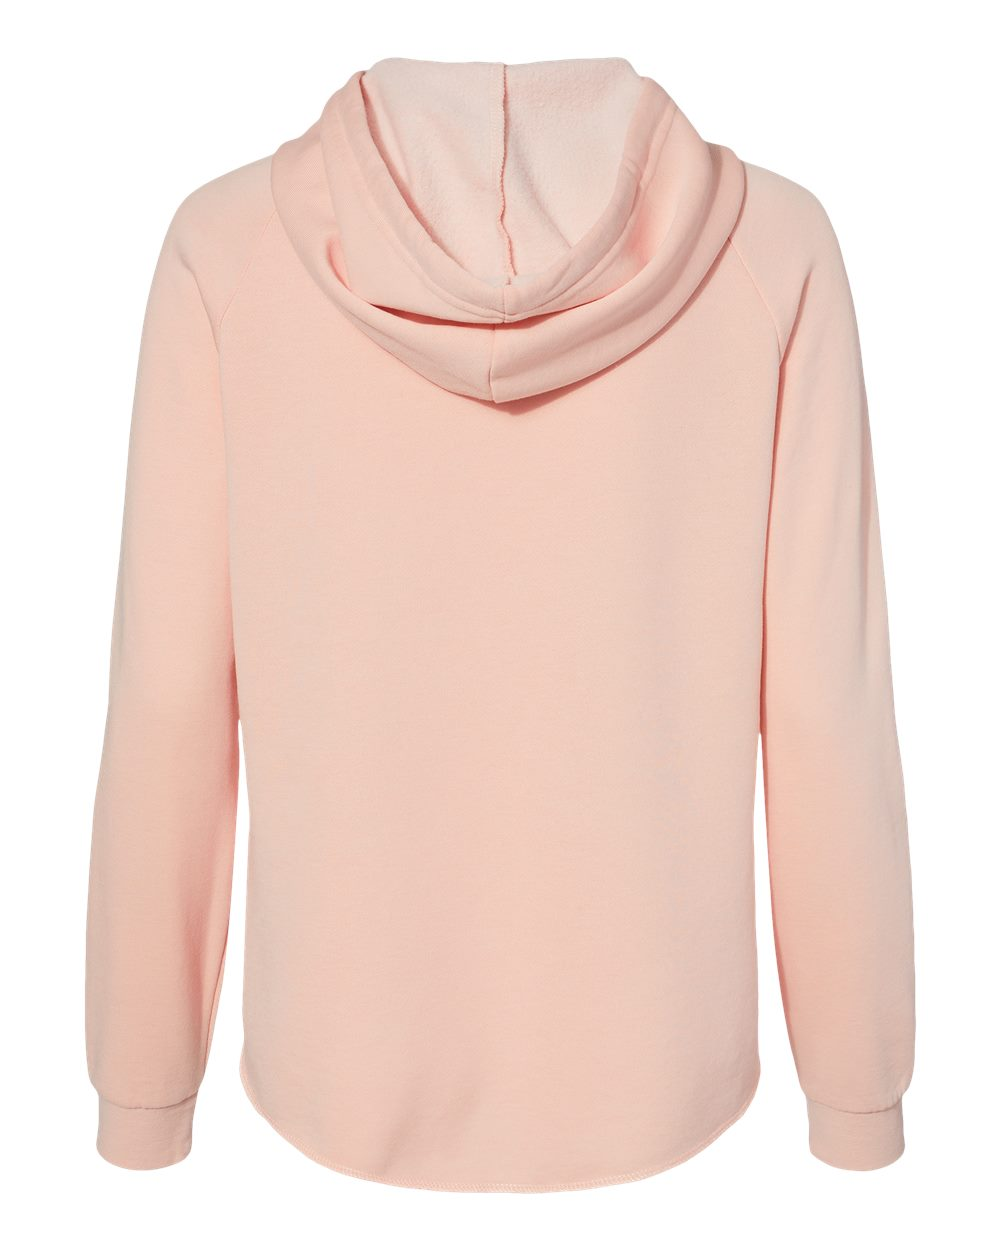 Independent-Trading-Co-Women-039-s-Wave-Wash-Full-Zip-Hooded-Sweatshirt-PRM2500Z thumbnail 8